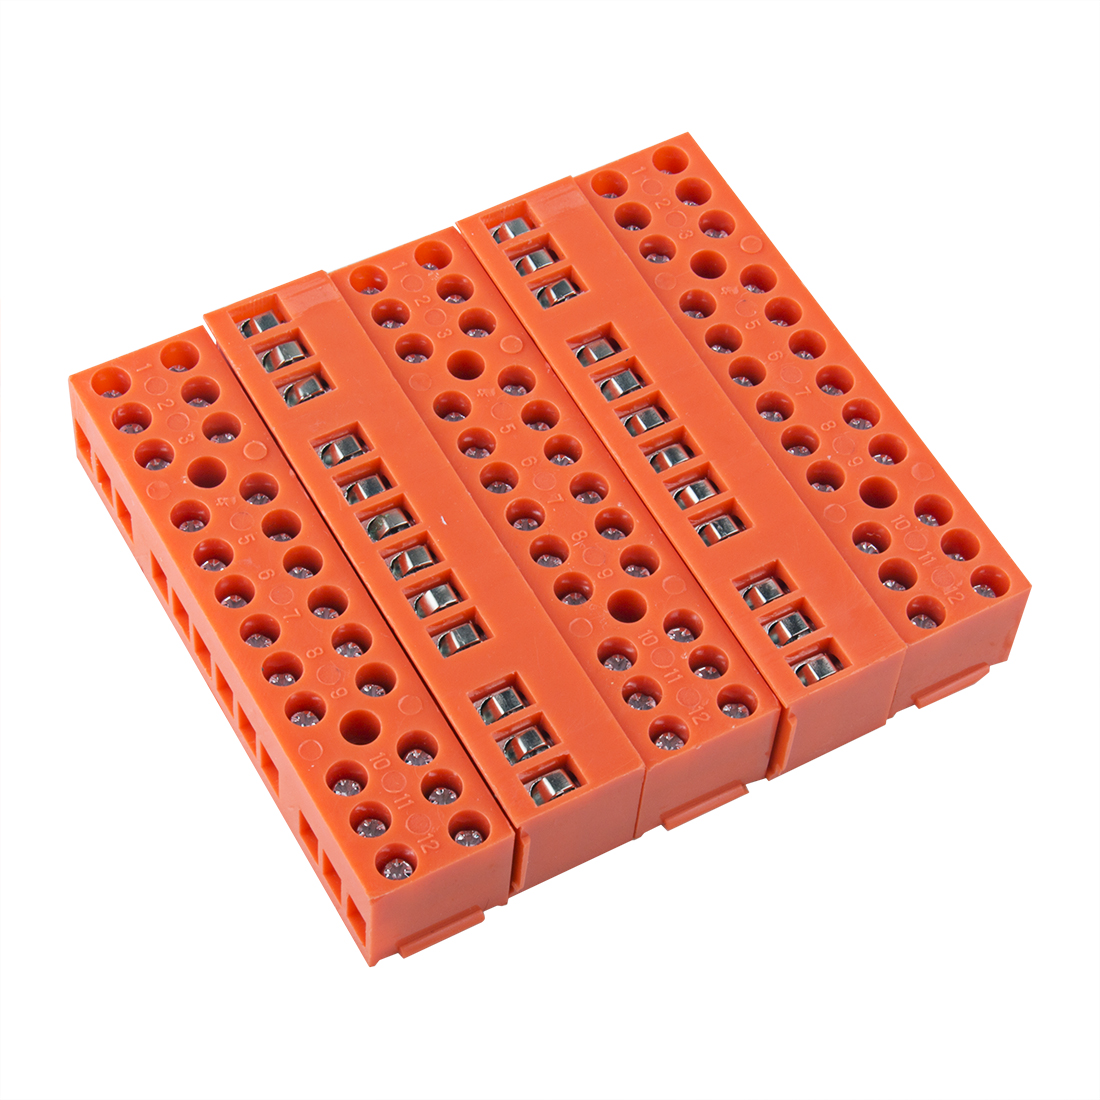 5 Pcs 600V 36A Dual Row 12 Positions Screw Terminal Electric Barrier Strip Block